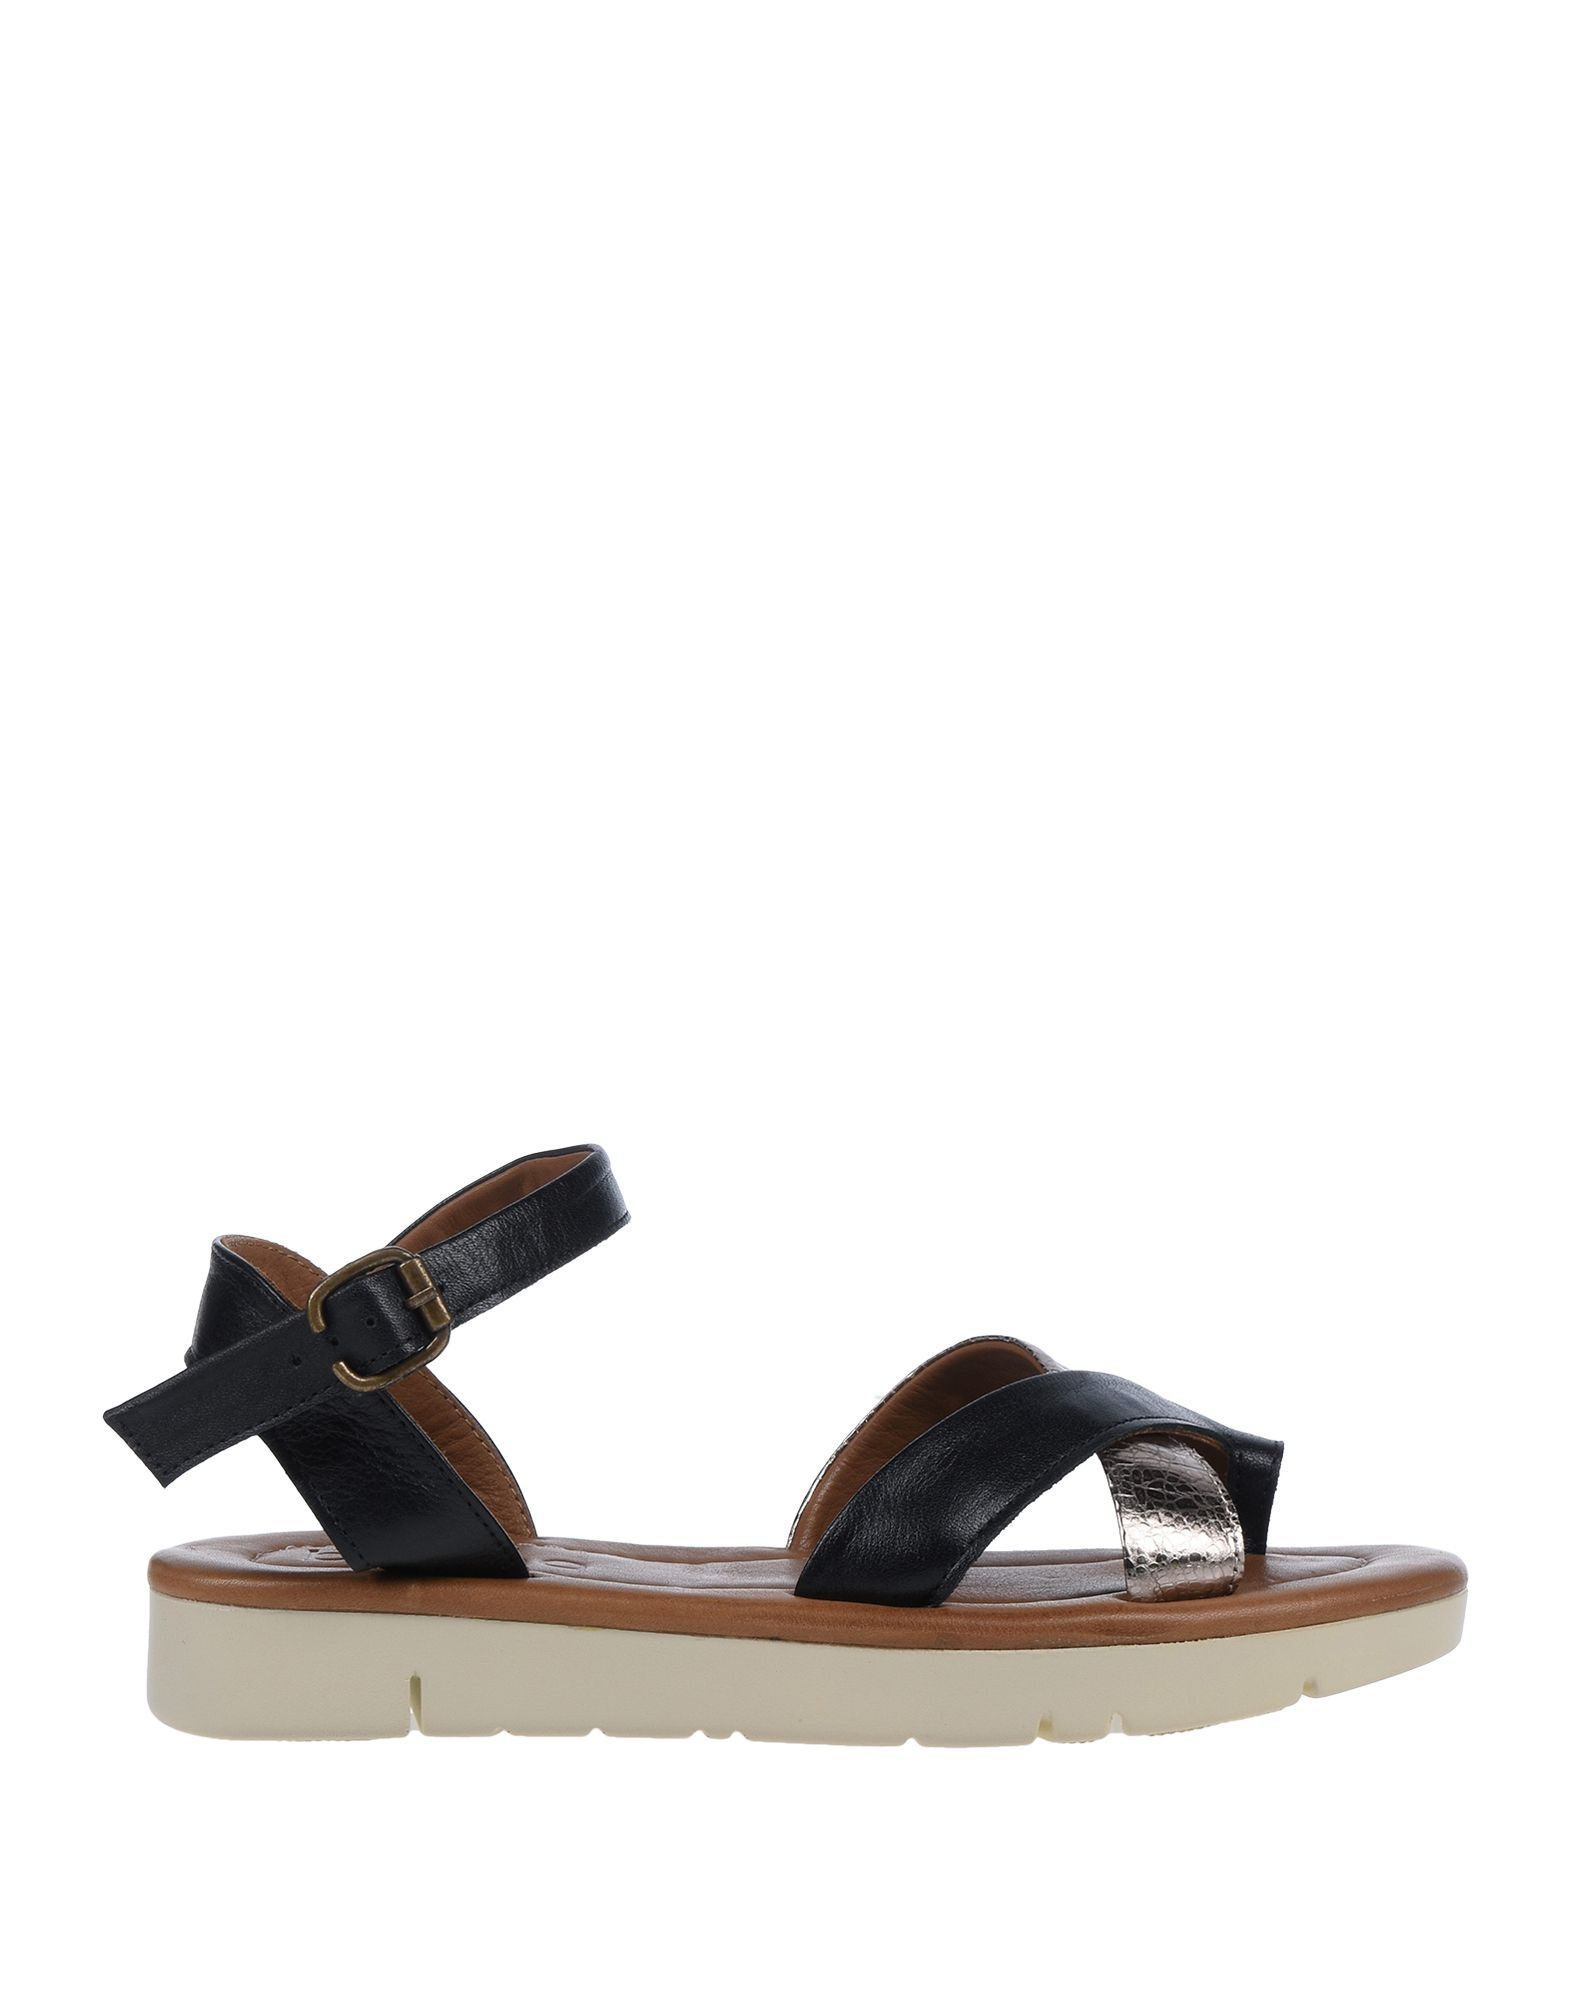 BUENO Toe strap sandals. leather, laminated effect, no appliqués, solid color, wrapping straps closure, round toeline, flatform, covered wedge, rubber sole, leather lining, contains non-textile parts of animal origin. Soft Leather